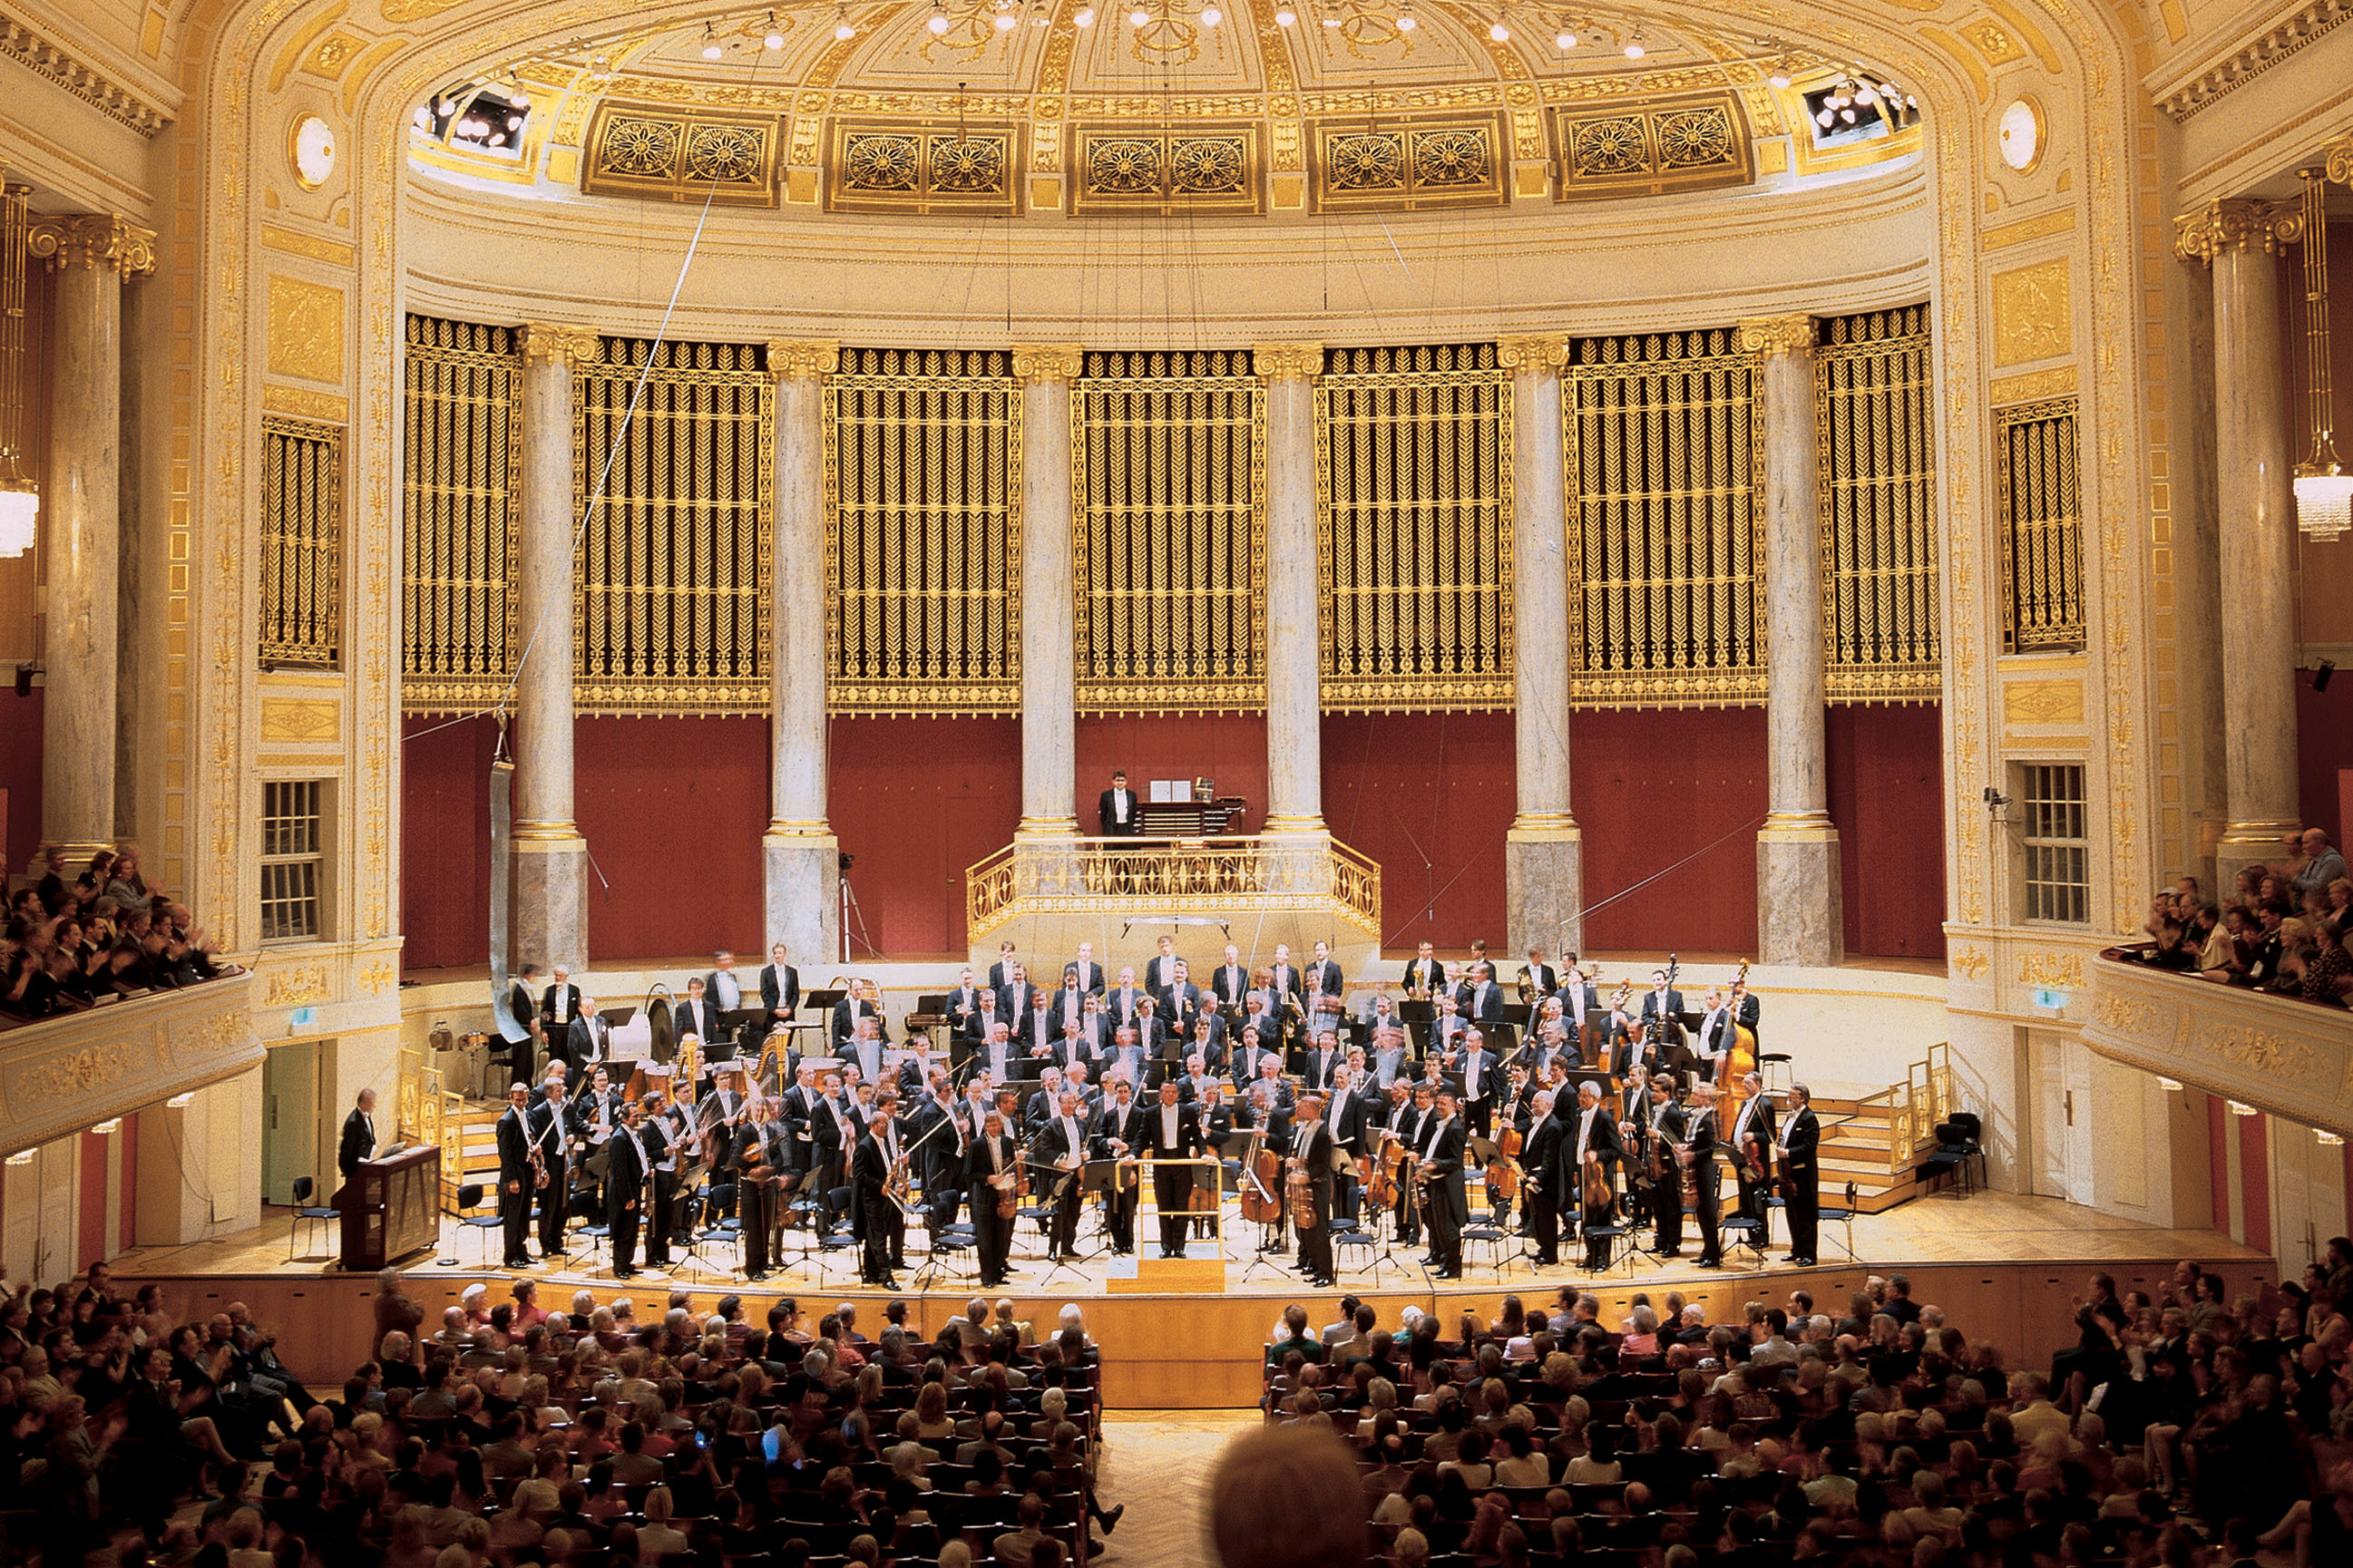 Konzerthaus Related Keywords - Long Tail